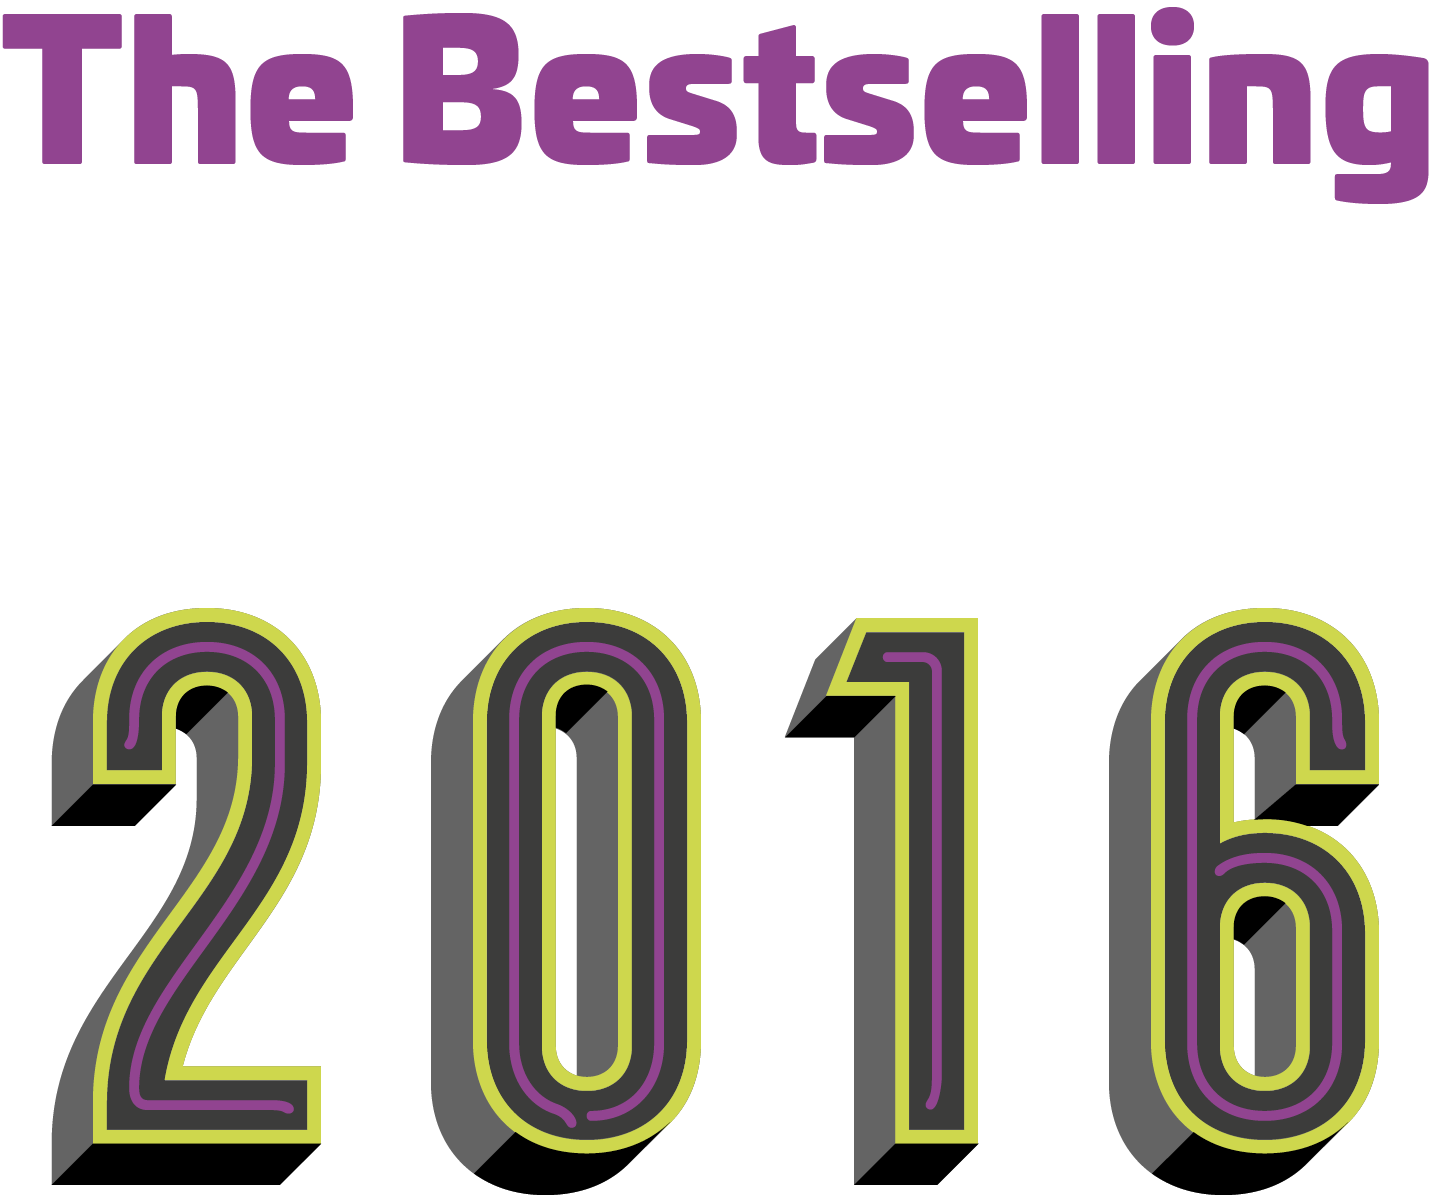 Special Edition – Bestsellers of 2016